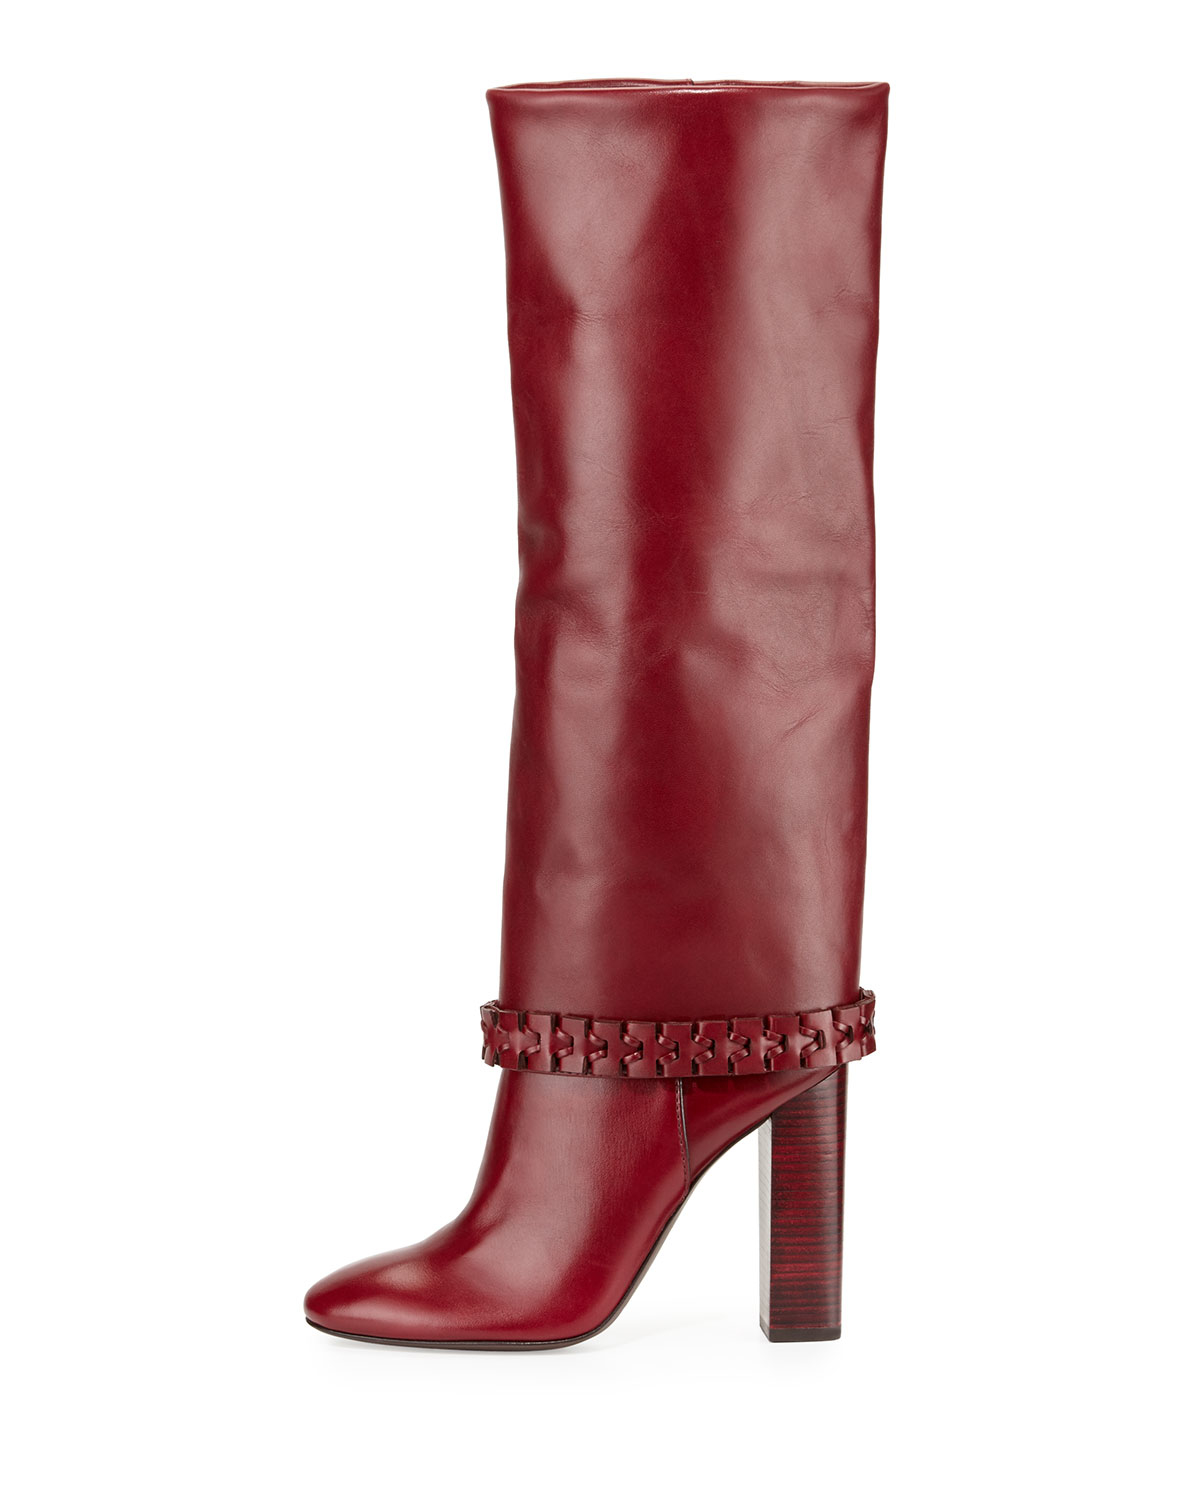 7e9cdc729f5 Lyst - Tory Burch Sarava Leather Knee Boot in Red